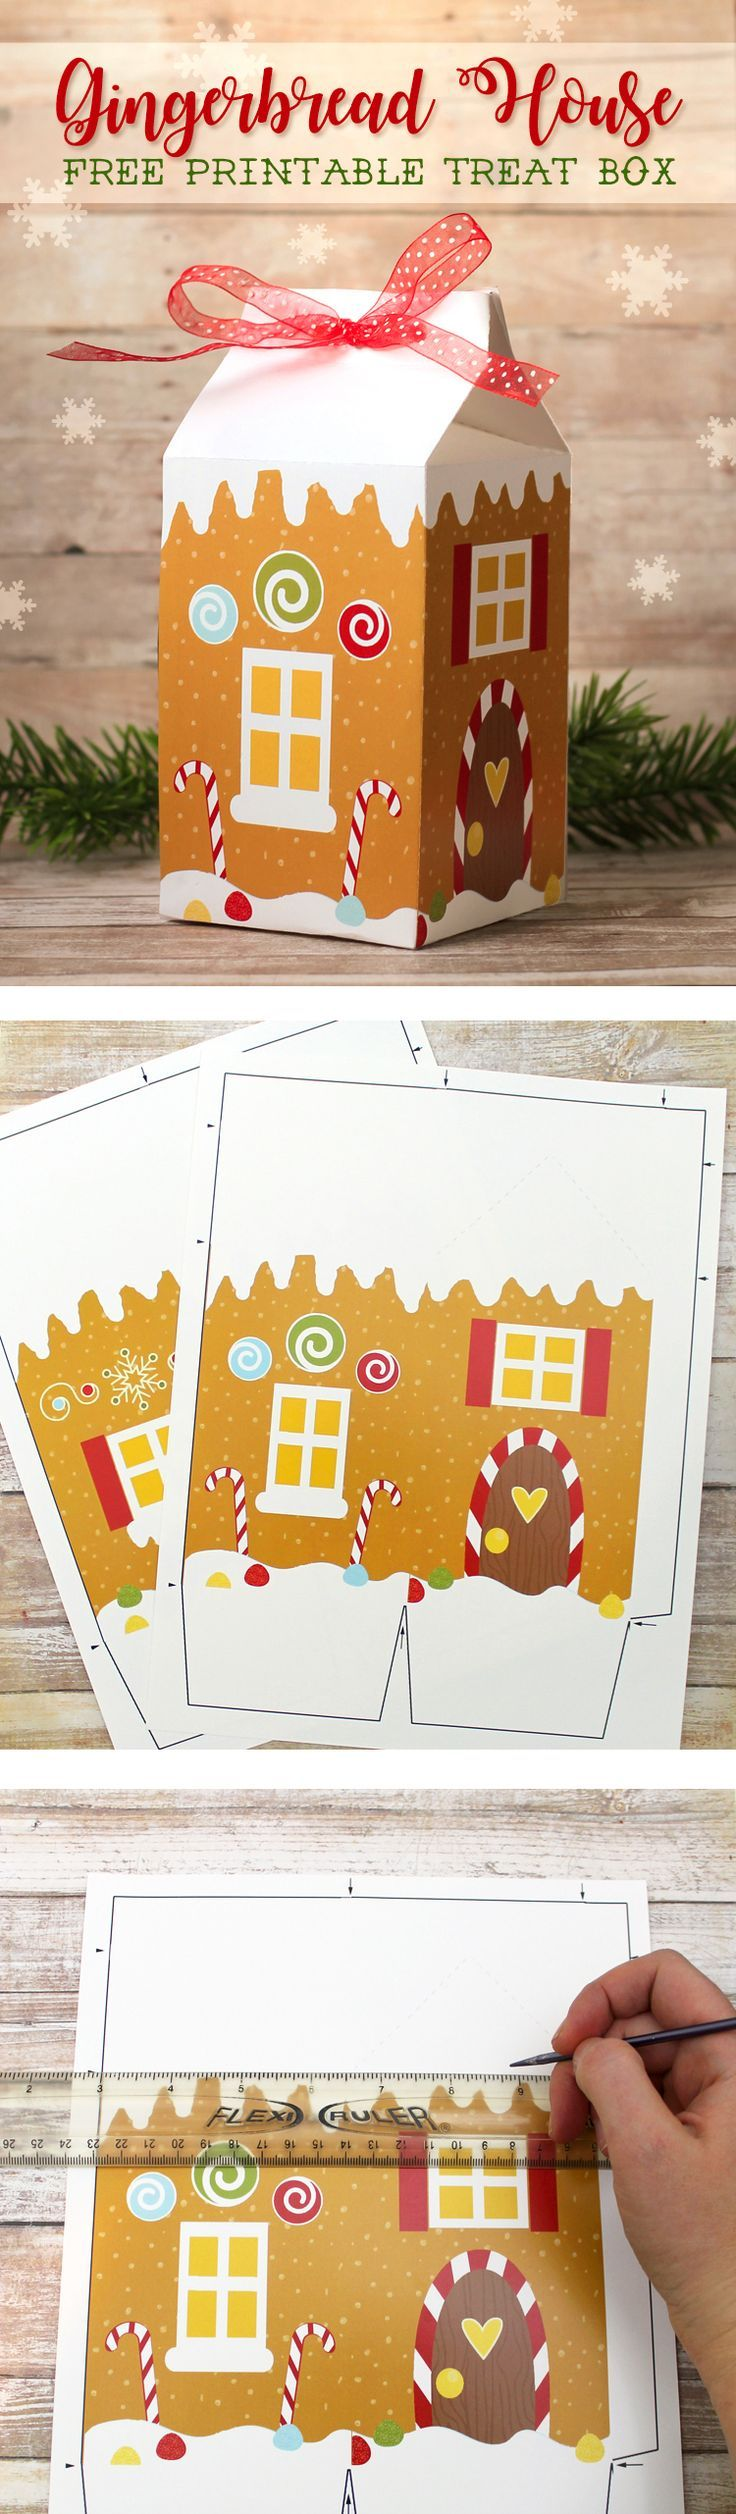 Gingerbread house free printables - Free Printable Gingerbread House Treat Box This Is The Cutest Way To Package Up Christmas